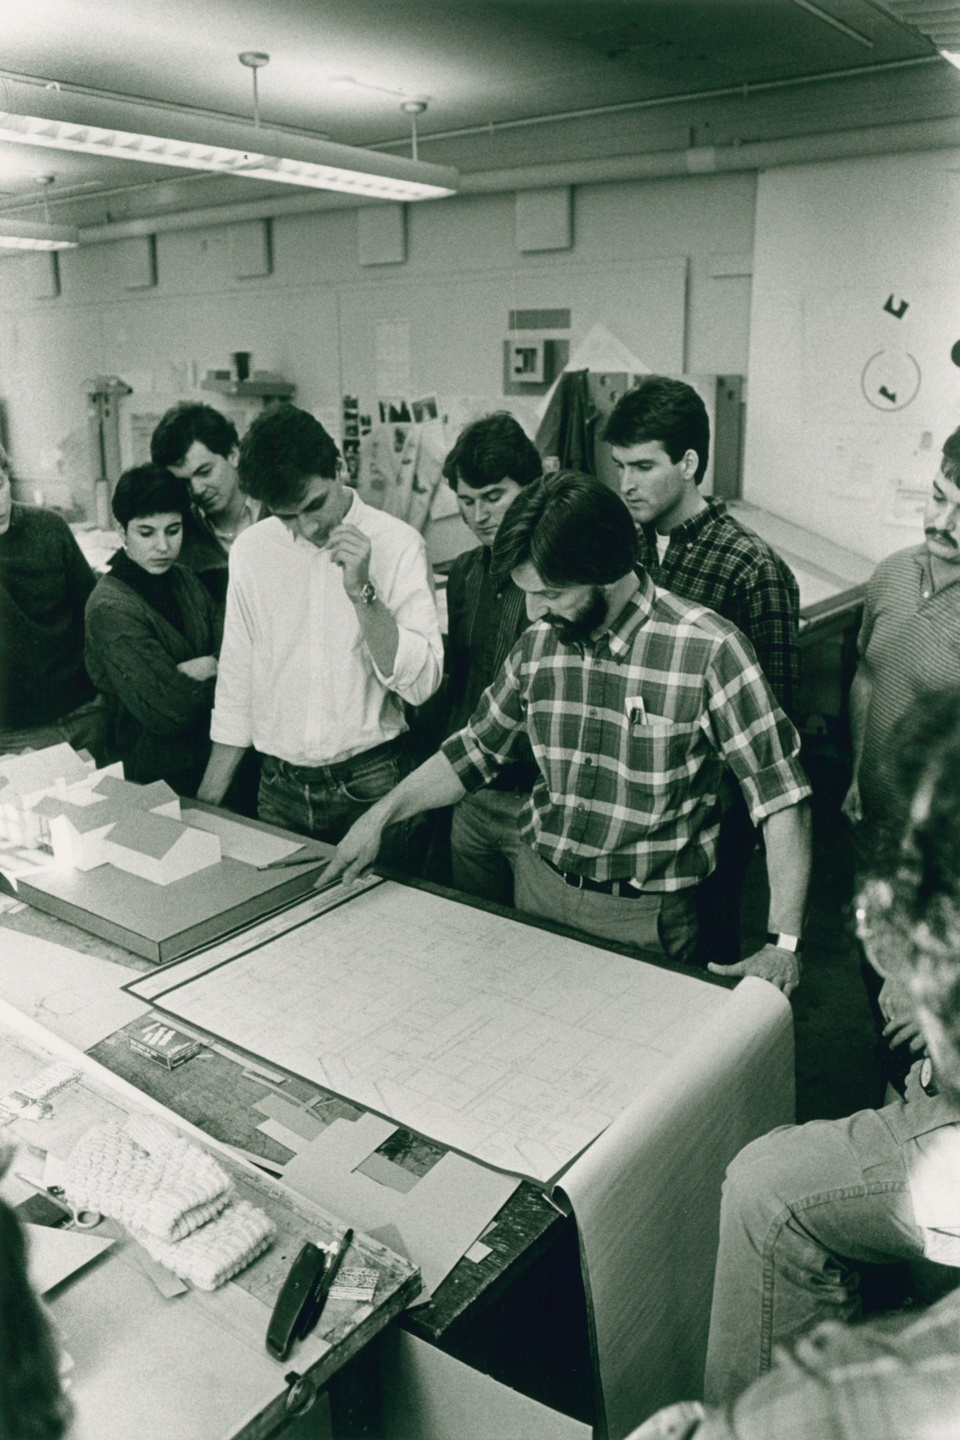 Black and white photo of a person gesturing to a blueprint document on a studio table while others look on.